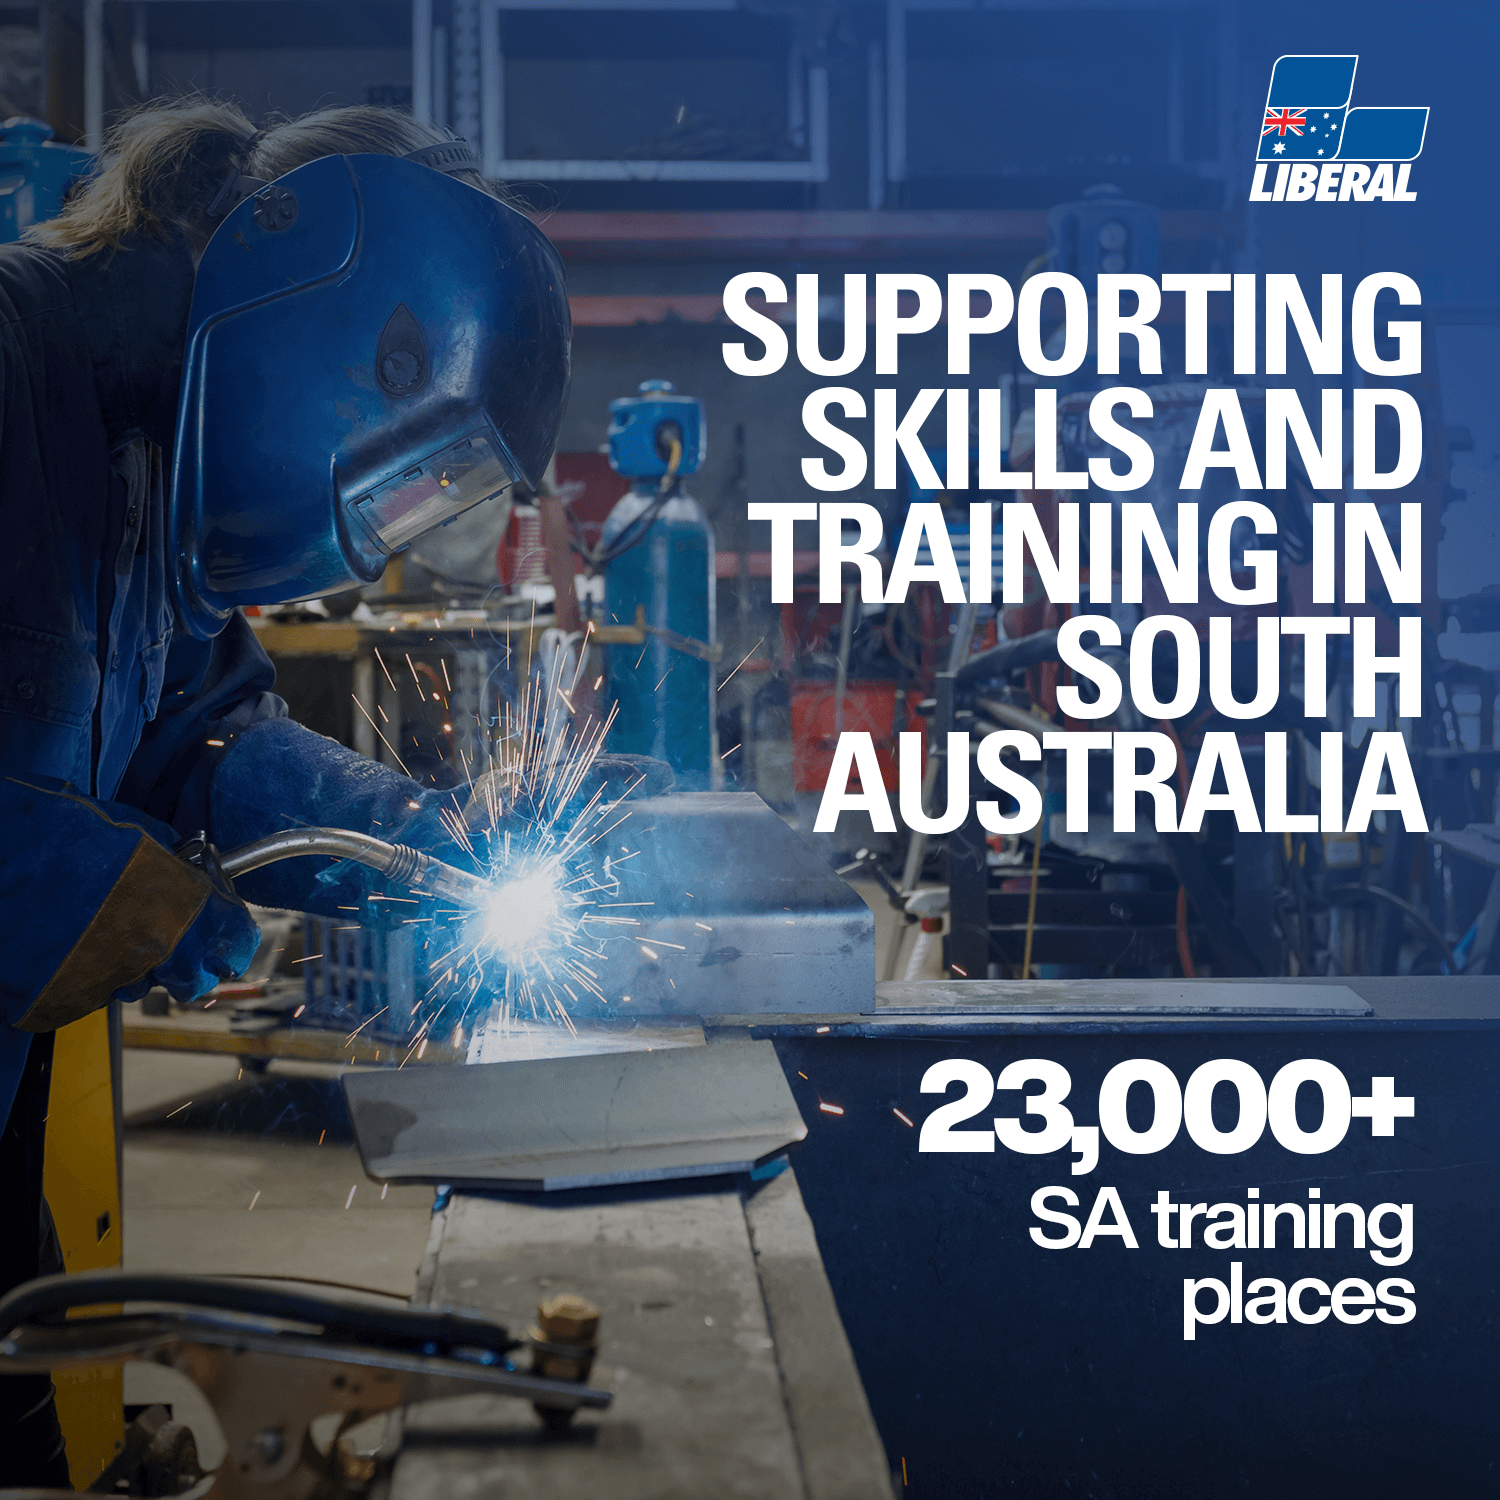 $2 Billion Skills Package To Deliver Economic Recovery And Growth In Sturt